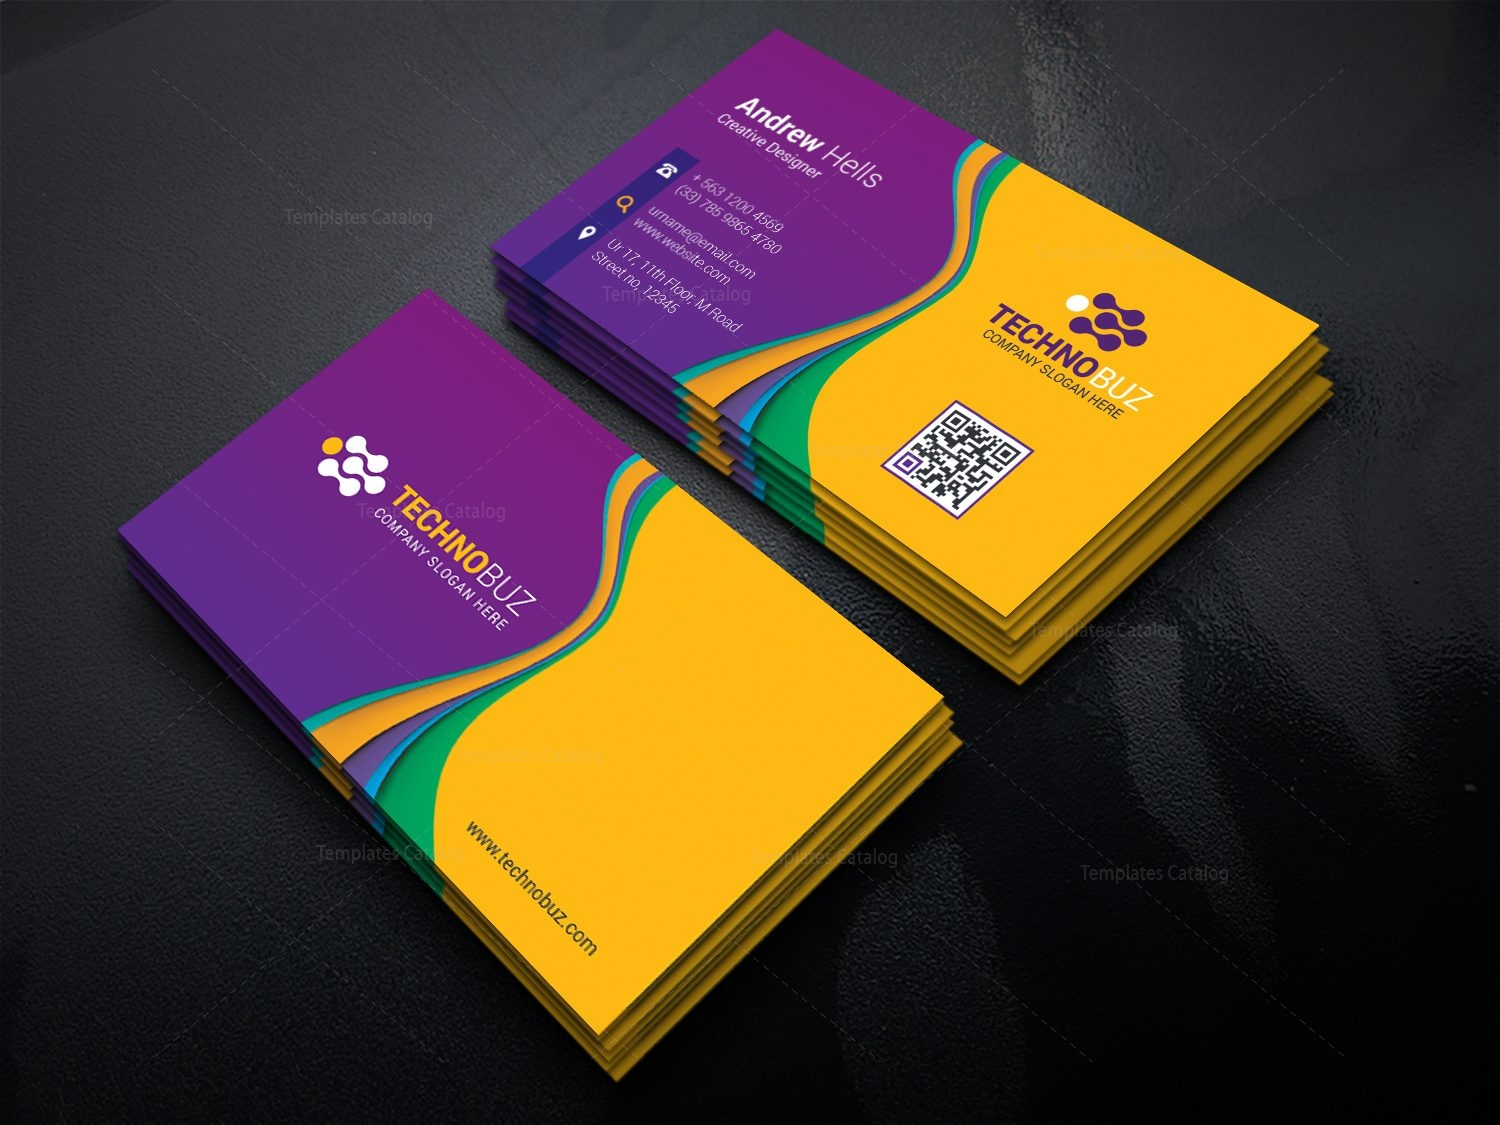 Polaris modern business card template 000770 template catalog polaris modern business card template accmission